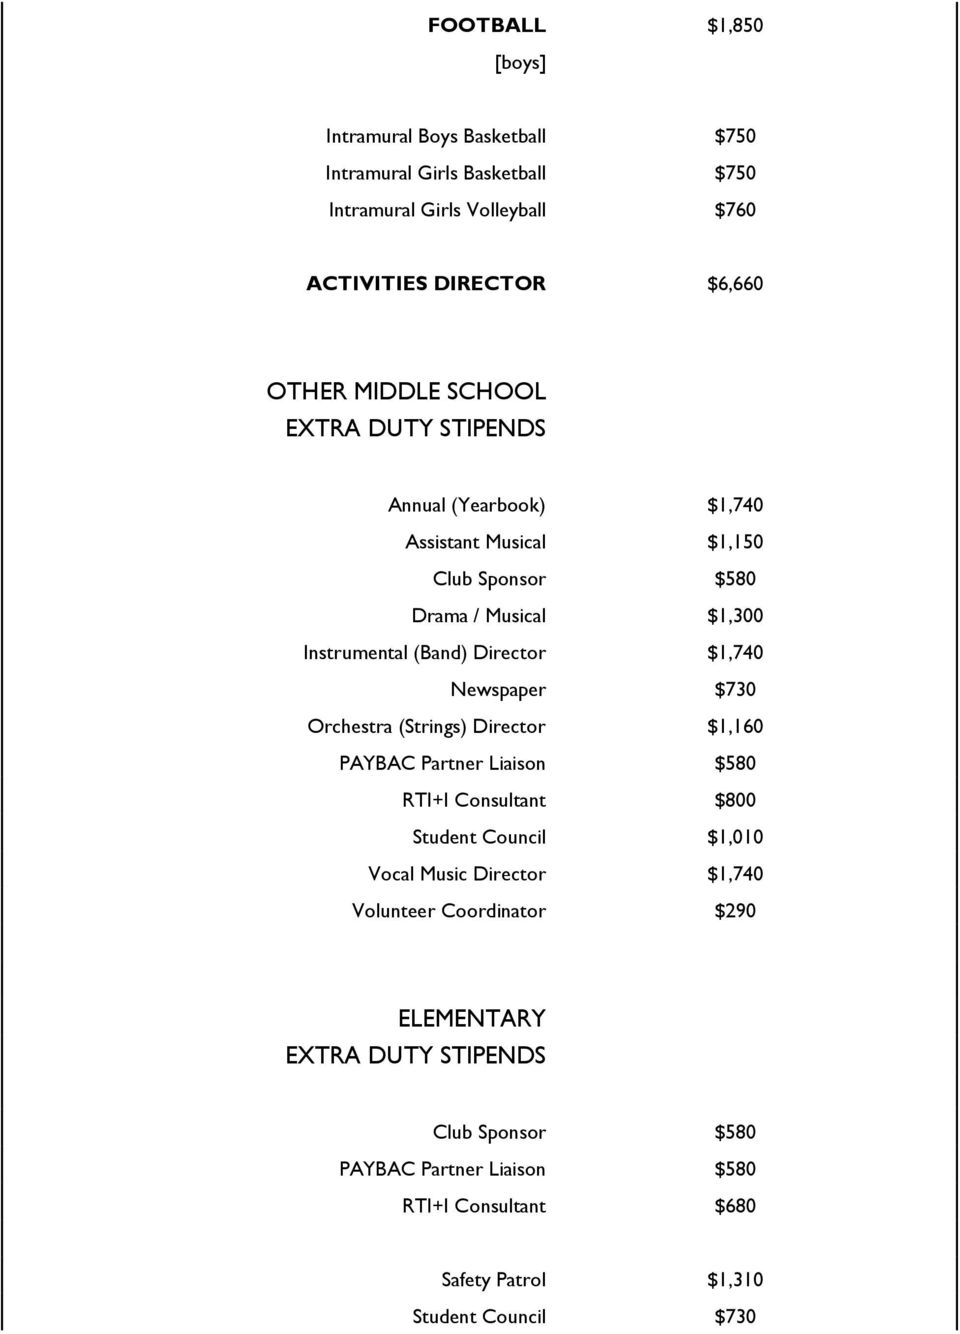 $1,740 Newspaper $730 Orchestra (Strings) Director $1,160 PAYBAC Partner Liaison $580 RTI+I Consultant $800 Student Council $1,010 Vocal Music Director $1,740